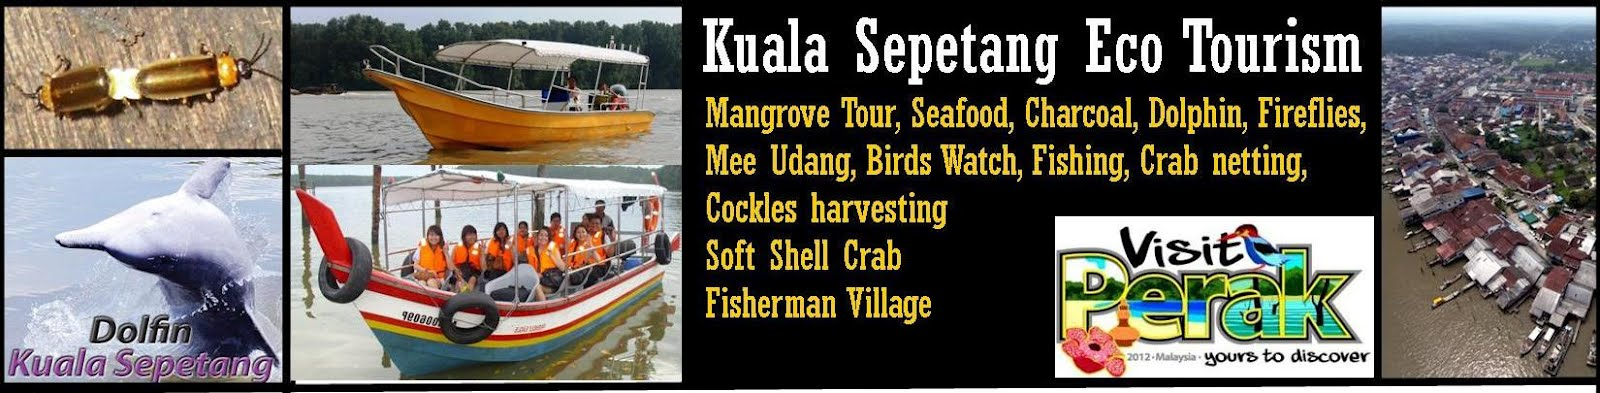 KUALA SEPETANG ECO TOURISM Mangrove Tour, Bird Watch, Fireflies Sighting and Lucky Dolphin